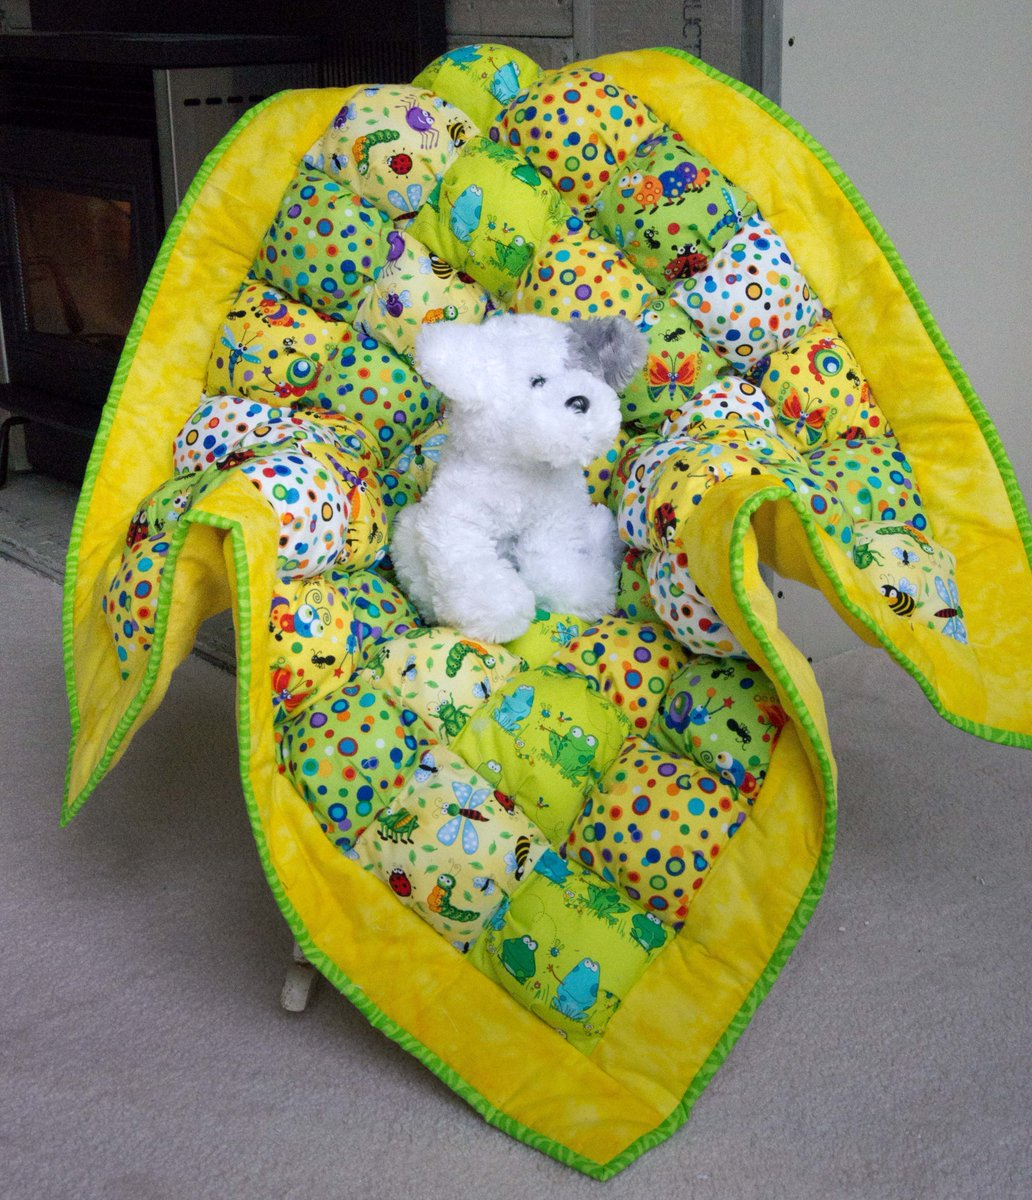 #Bug Out with this #BRIGHT #Bugalicious #tummyTime #Quilt perfect #ShowerGift  #Newborn #Nursery #newMom #BabyGift   https:// buff.ly/2ytnkz2  &nbsp;  <br>http://pic.twitter.com/ZlwjY9RH7U